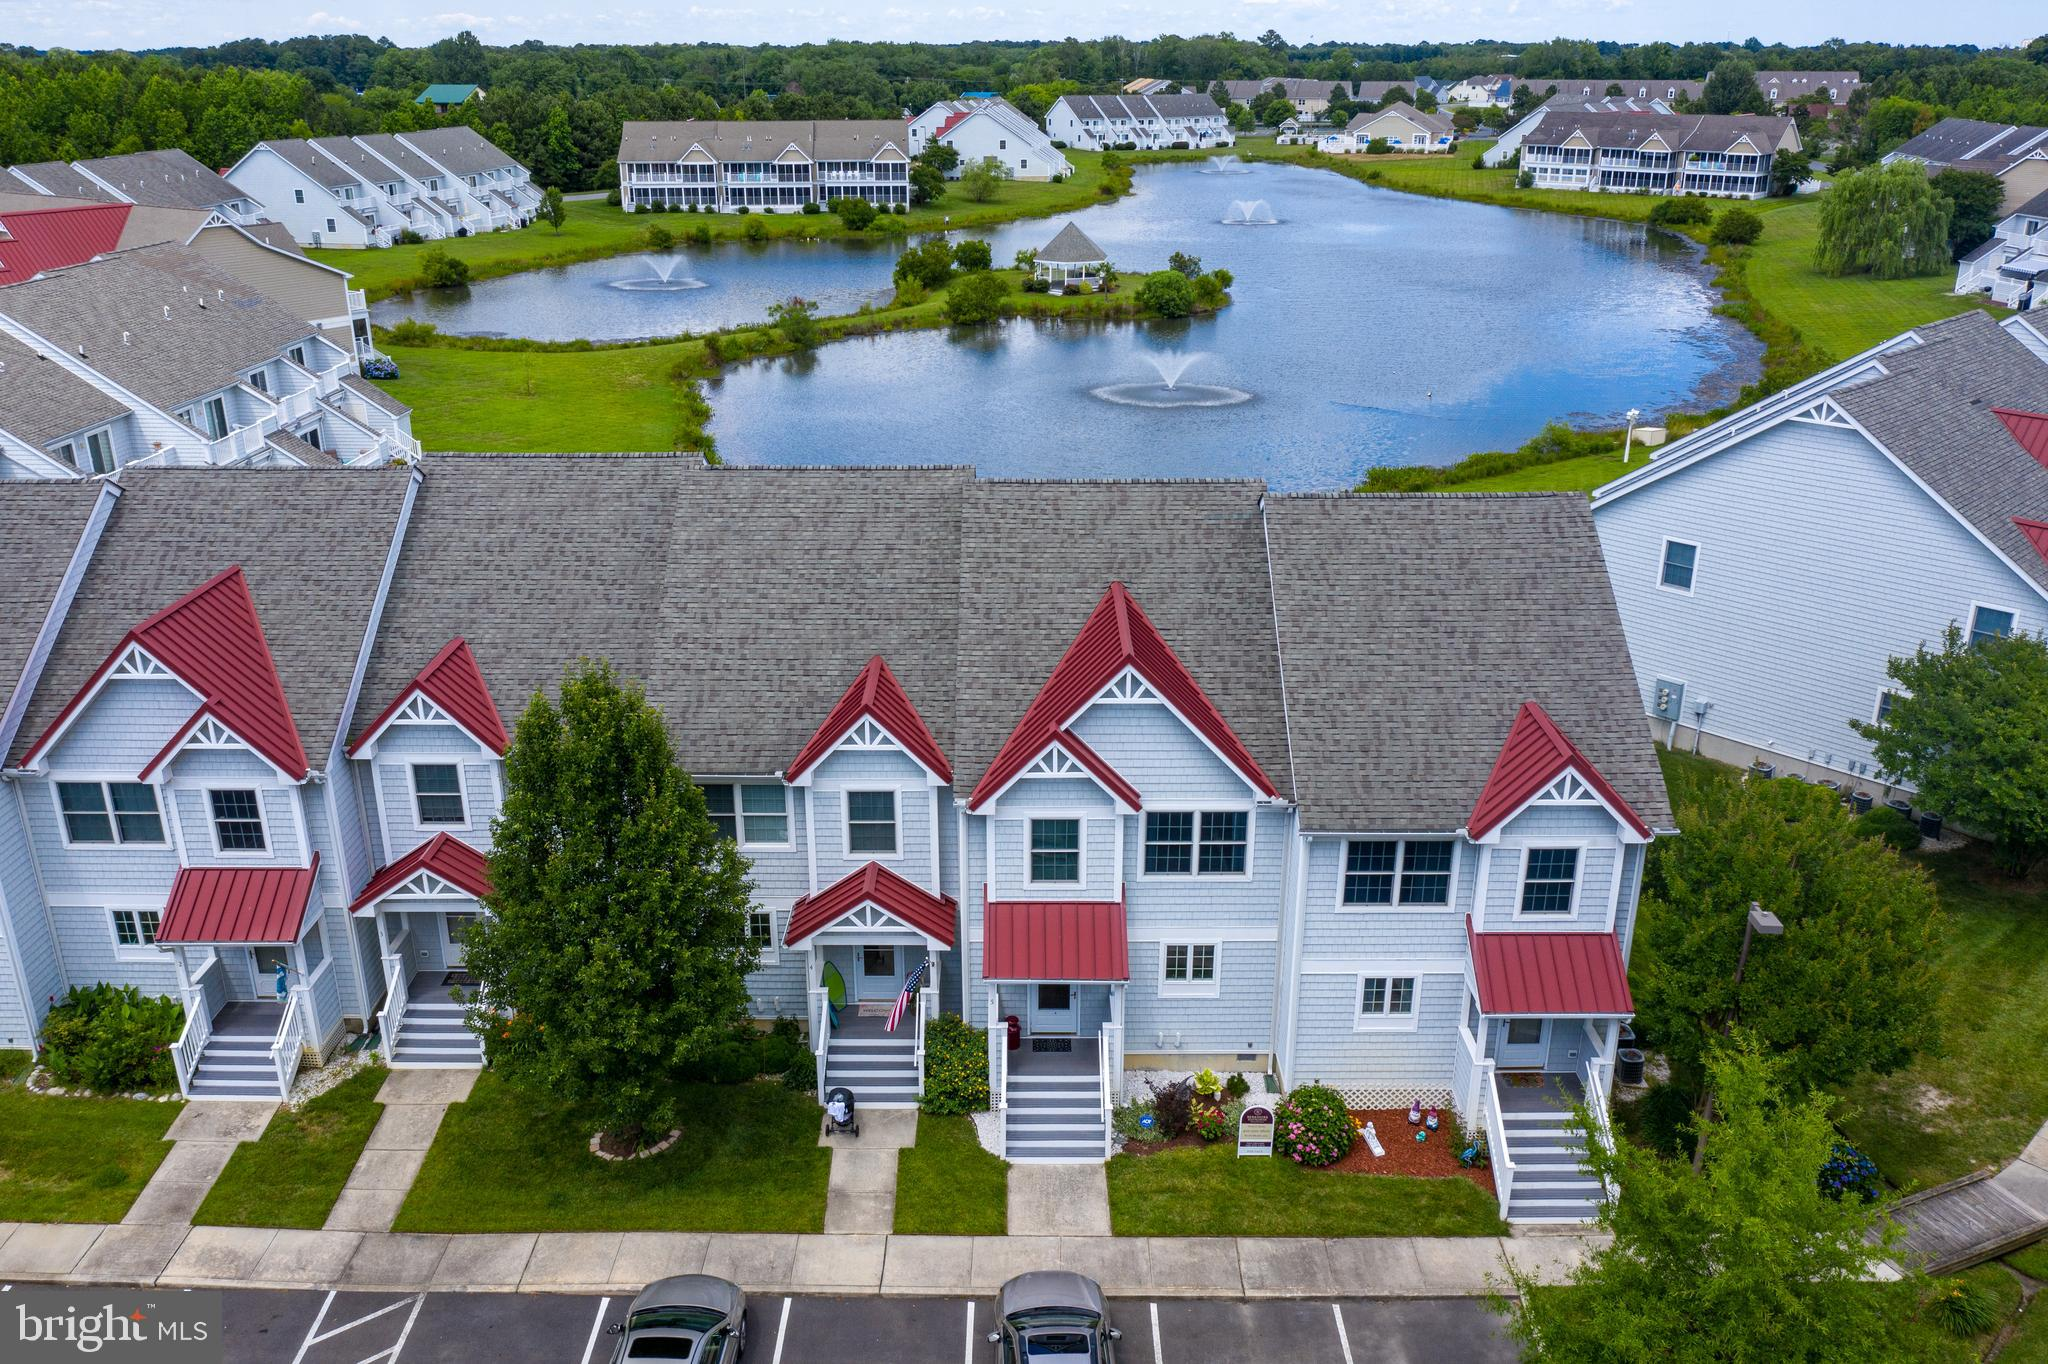 Fantastic 3 bedroom 2 1/2 bath townhome! Gorgeous pond view from your back deck! Open Floor Plan. Gas  fireplace!  Desirable West Ocean City location!  Community ammenites include indoor pool, outdoor pool, club house, fitness center, kids play area and tennis/basketball courts! Close to dining, shopping, golfing and the beaches of assateague island and ocean city, No city Taxes.  HOA fee includes water/sewer/trash/insurance and community amenities.  Great opportunity to own property in West Ocean City!